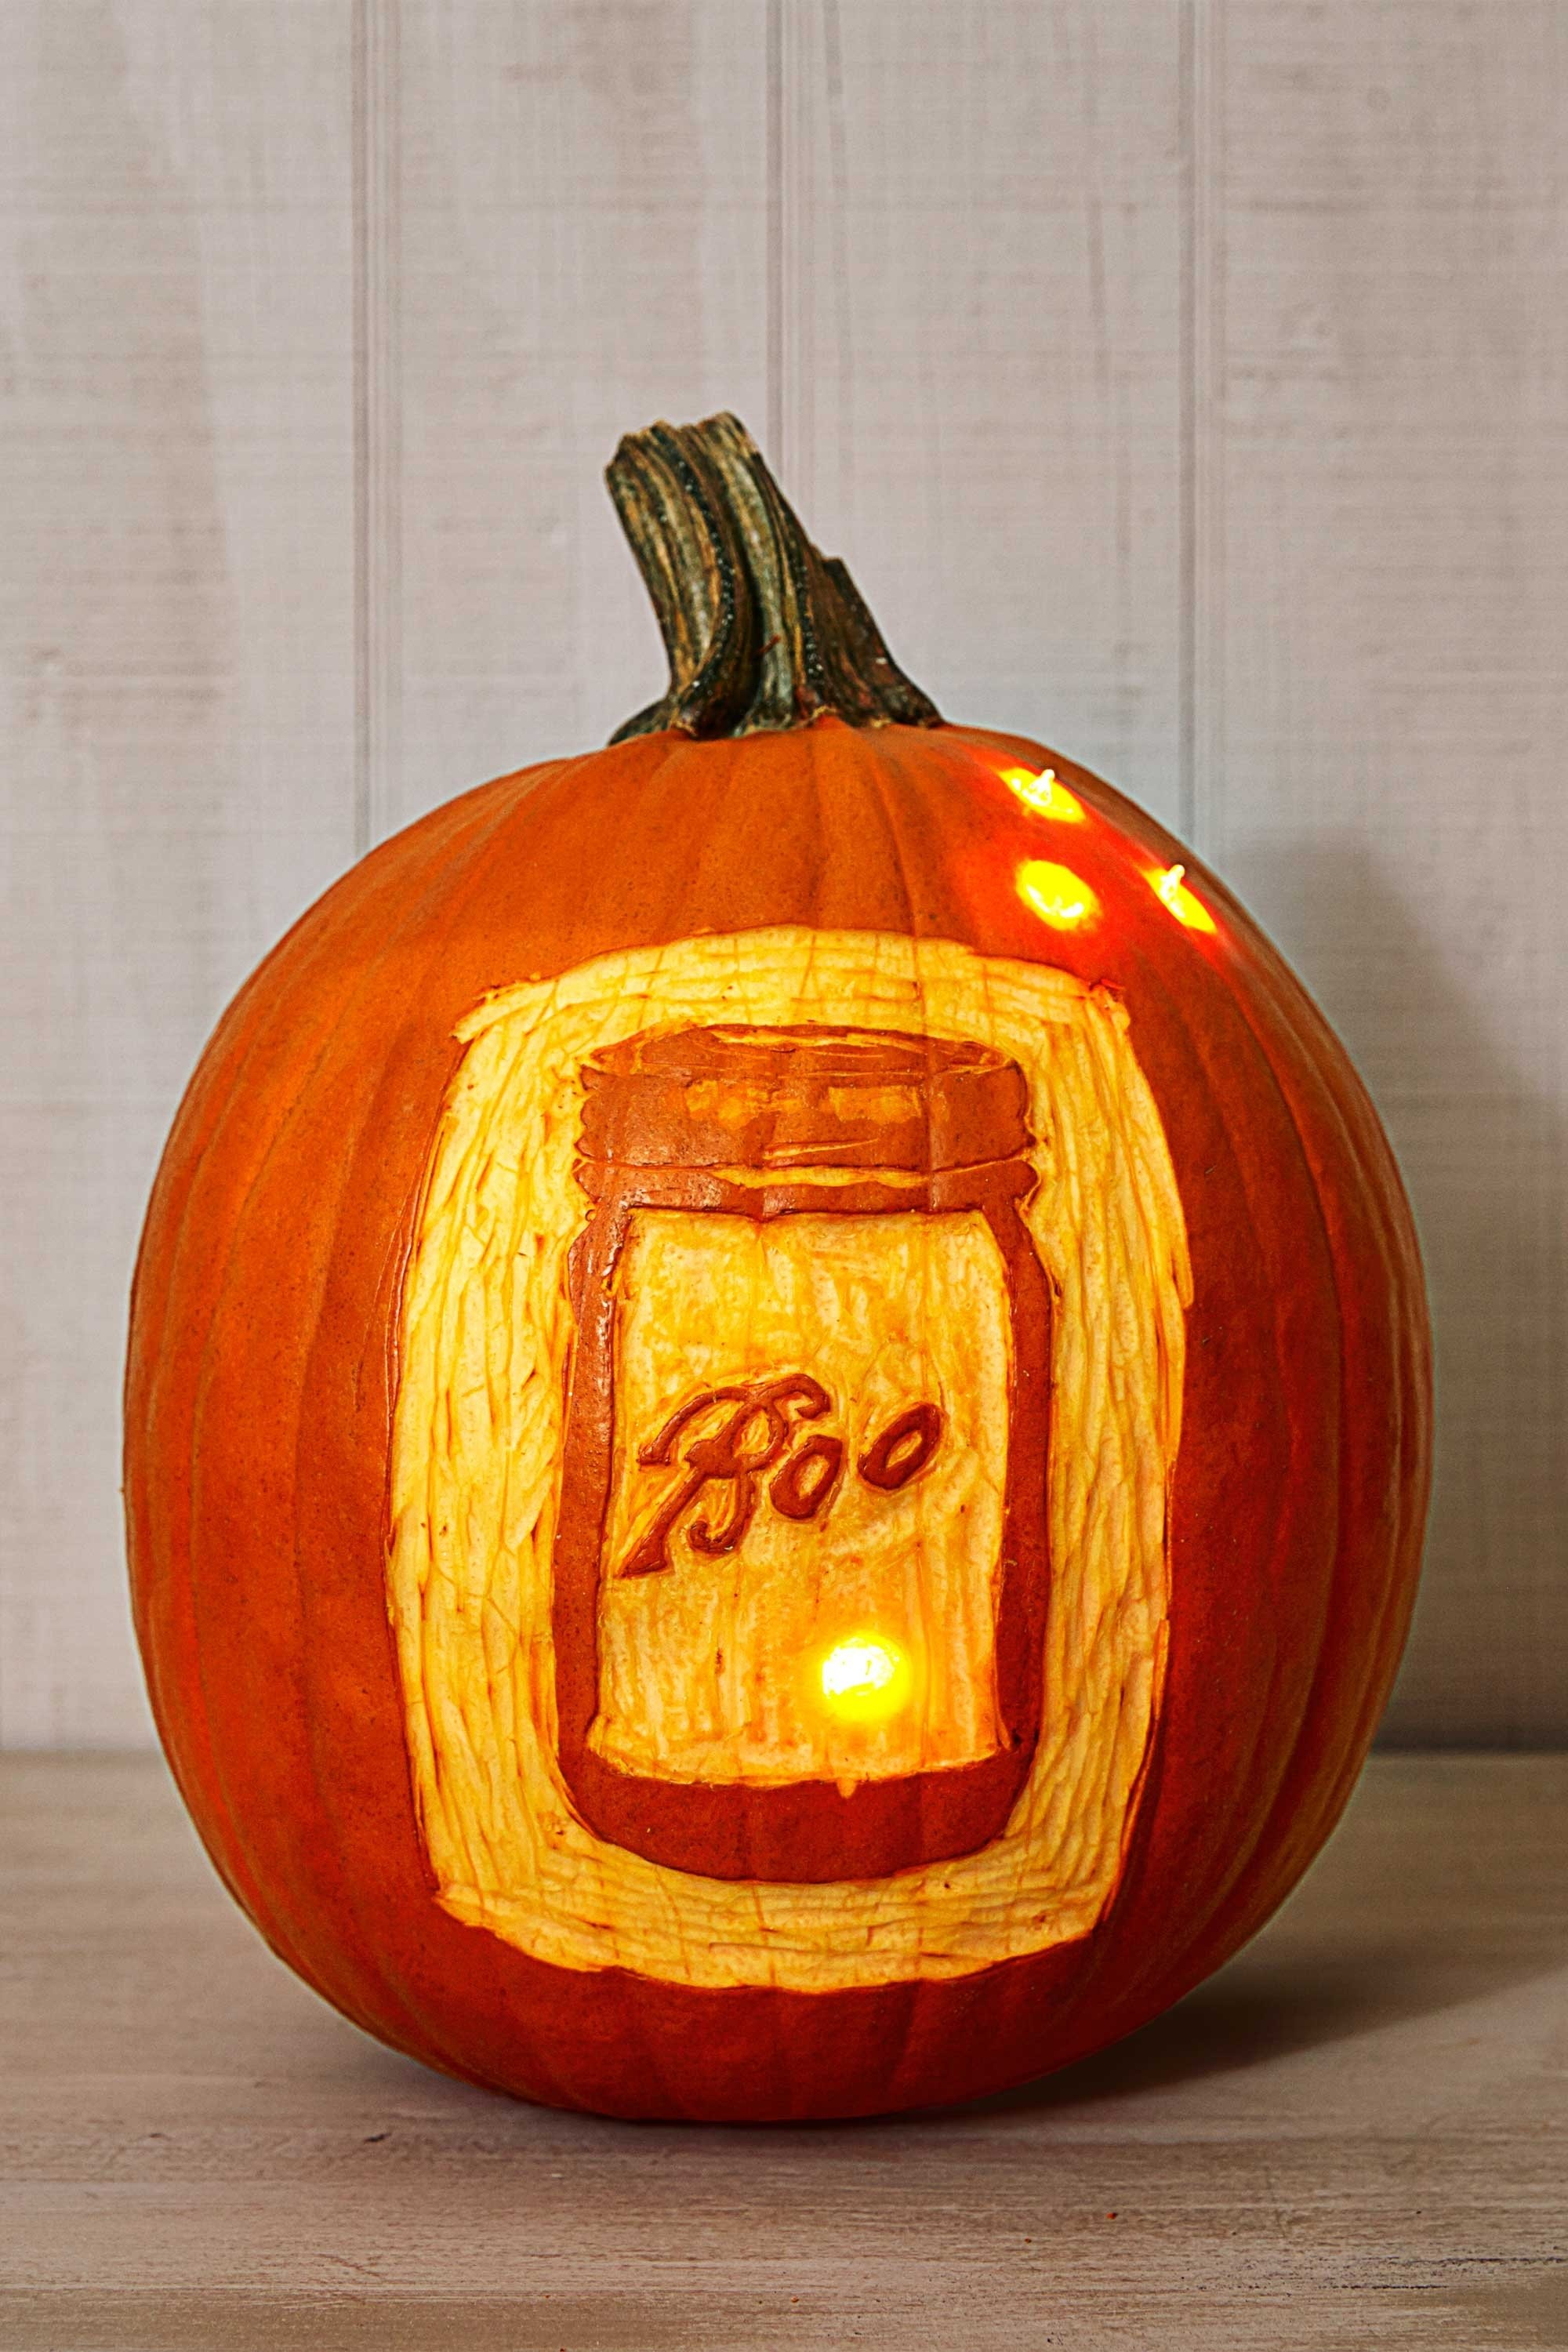 10 Lovable Cool And Easy Pumpkin Carving Ideas 50 easy pumpkin carving ideas 2017 cool patterns and designs for 3 2020